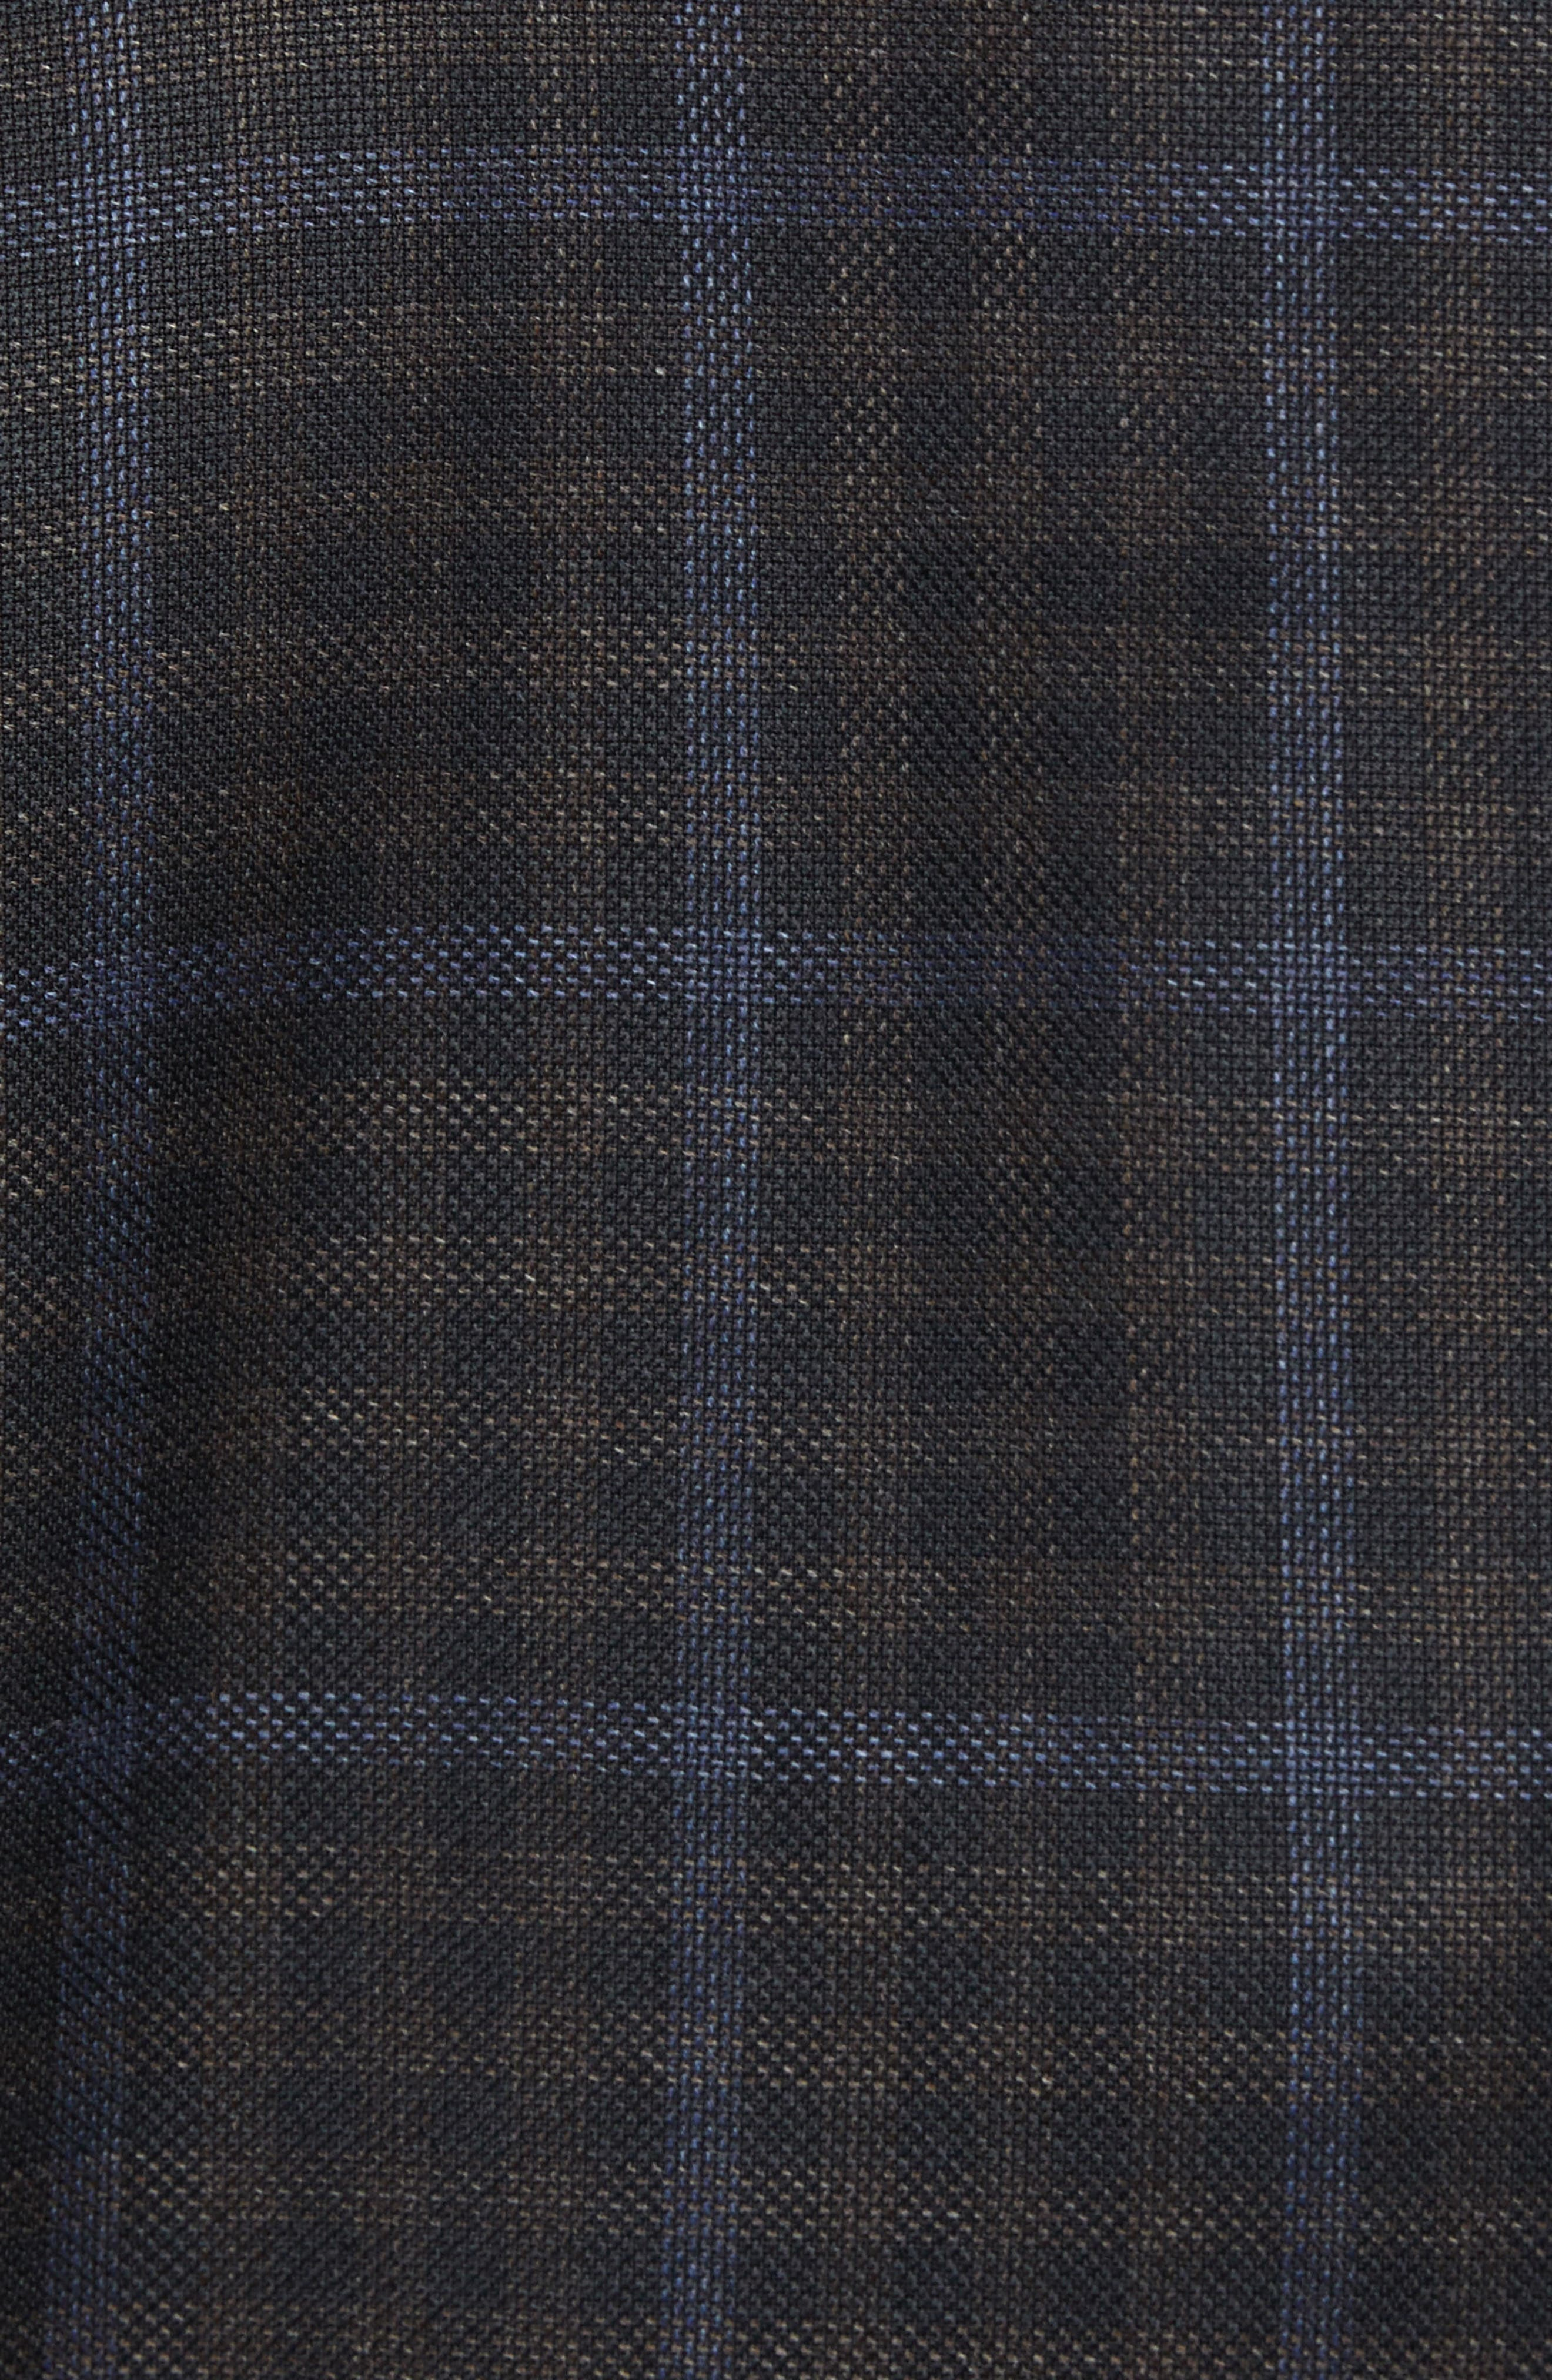 Classic Fit Check Wool Sport Coat,                             Alternate thumbnail 6, color,                             NAVY/ BROWN